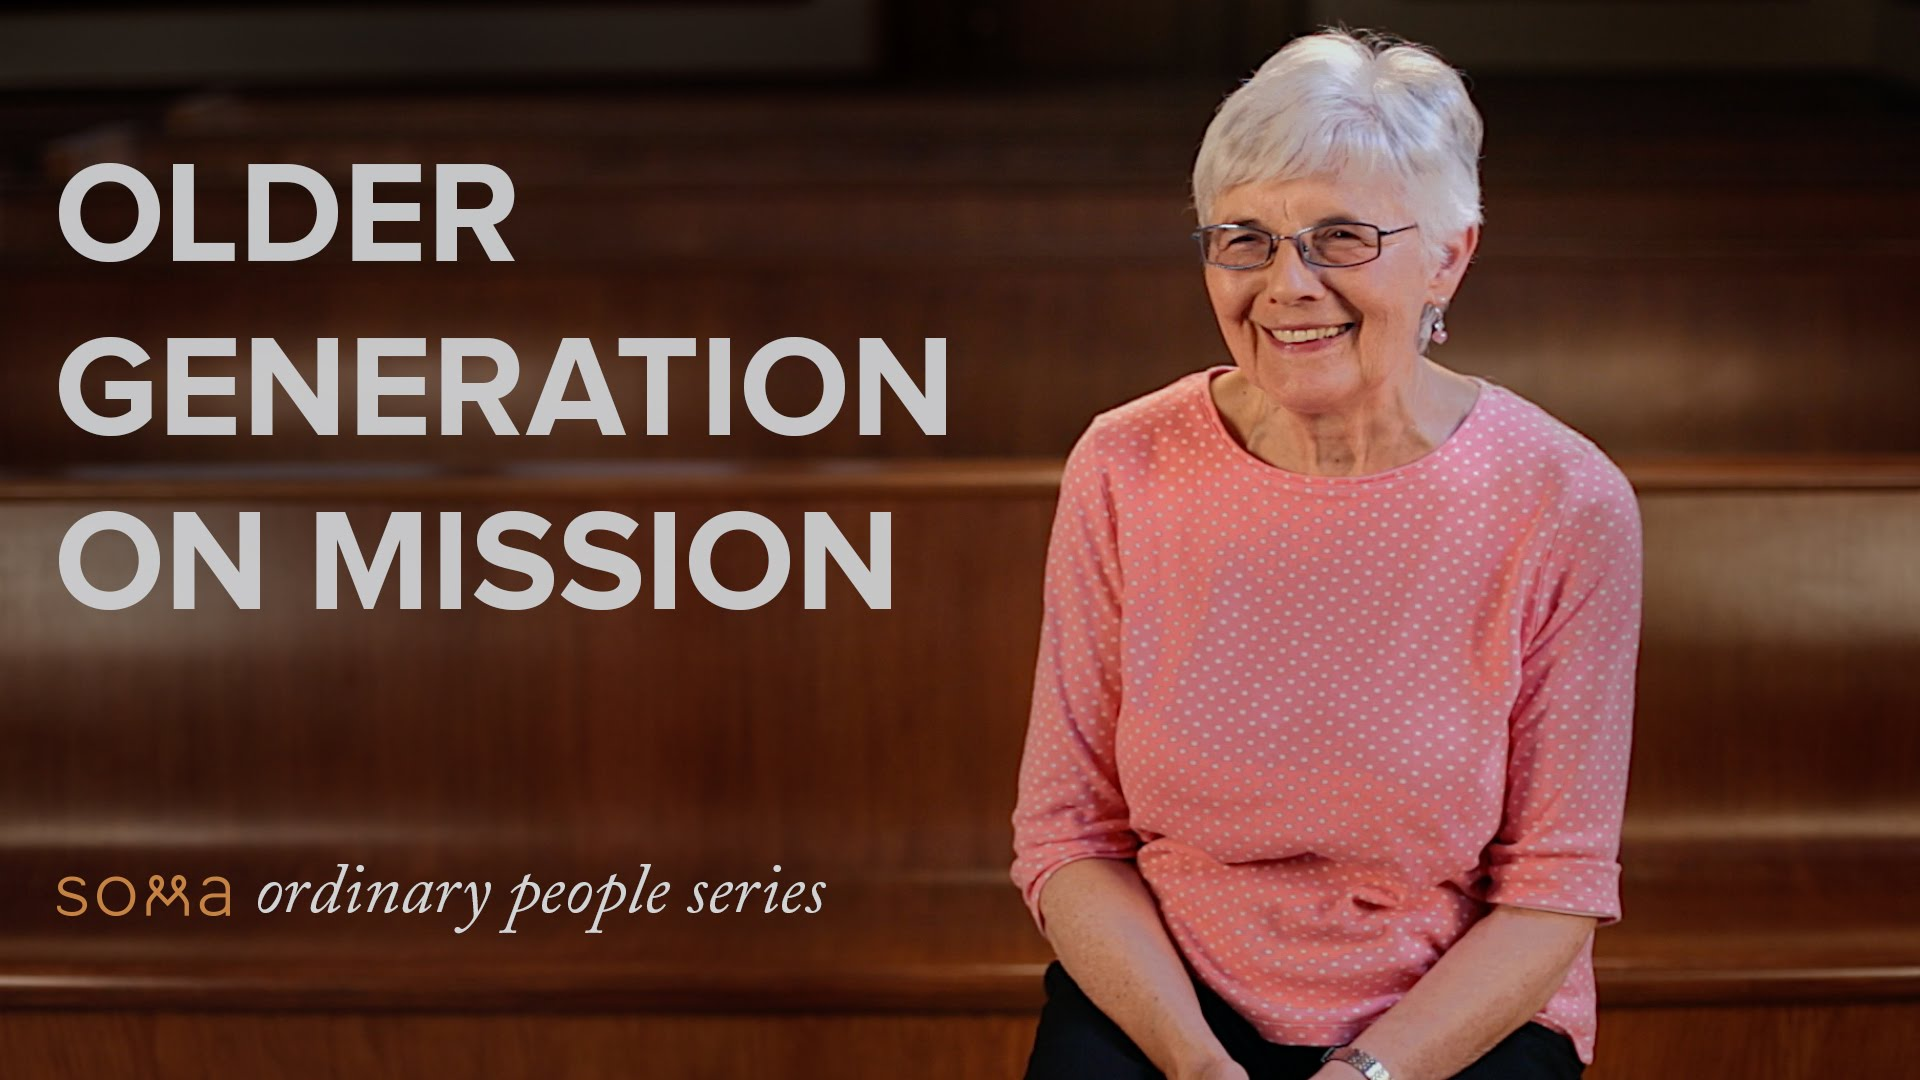 older-generation-on-mission